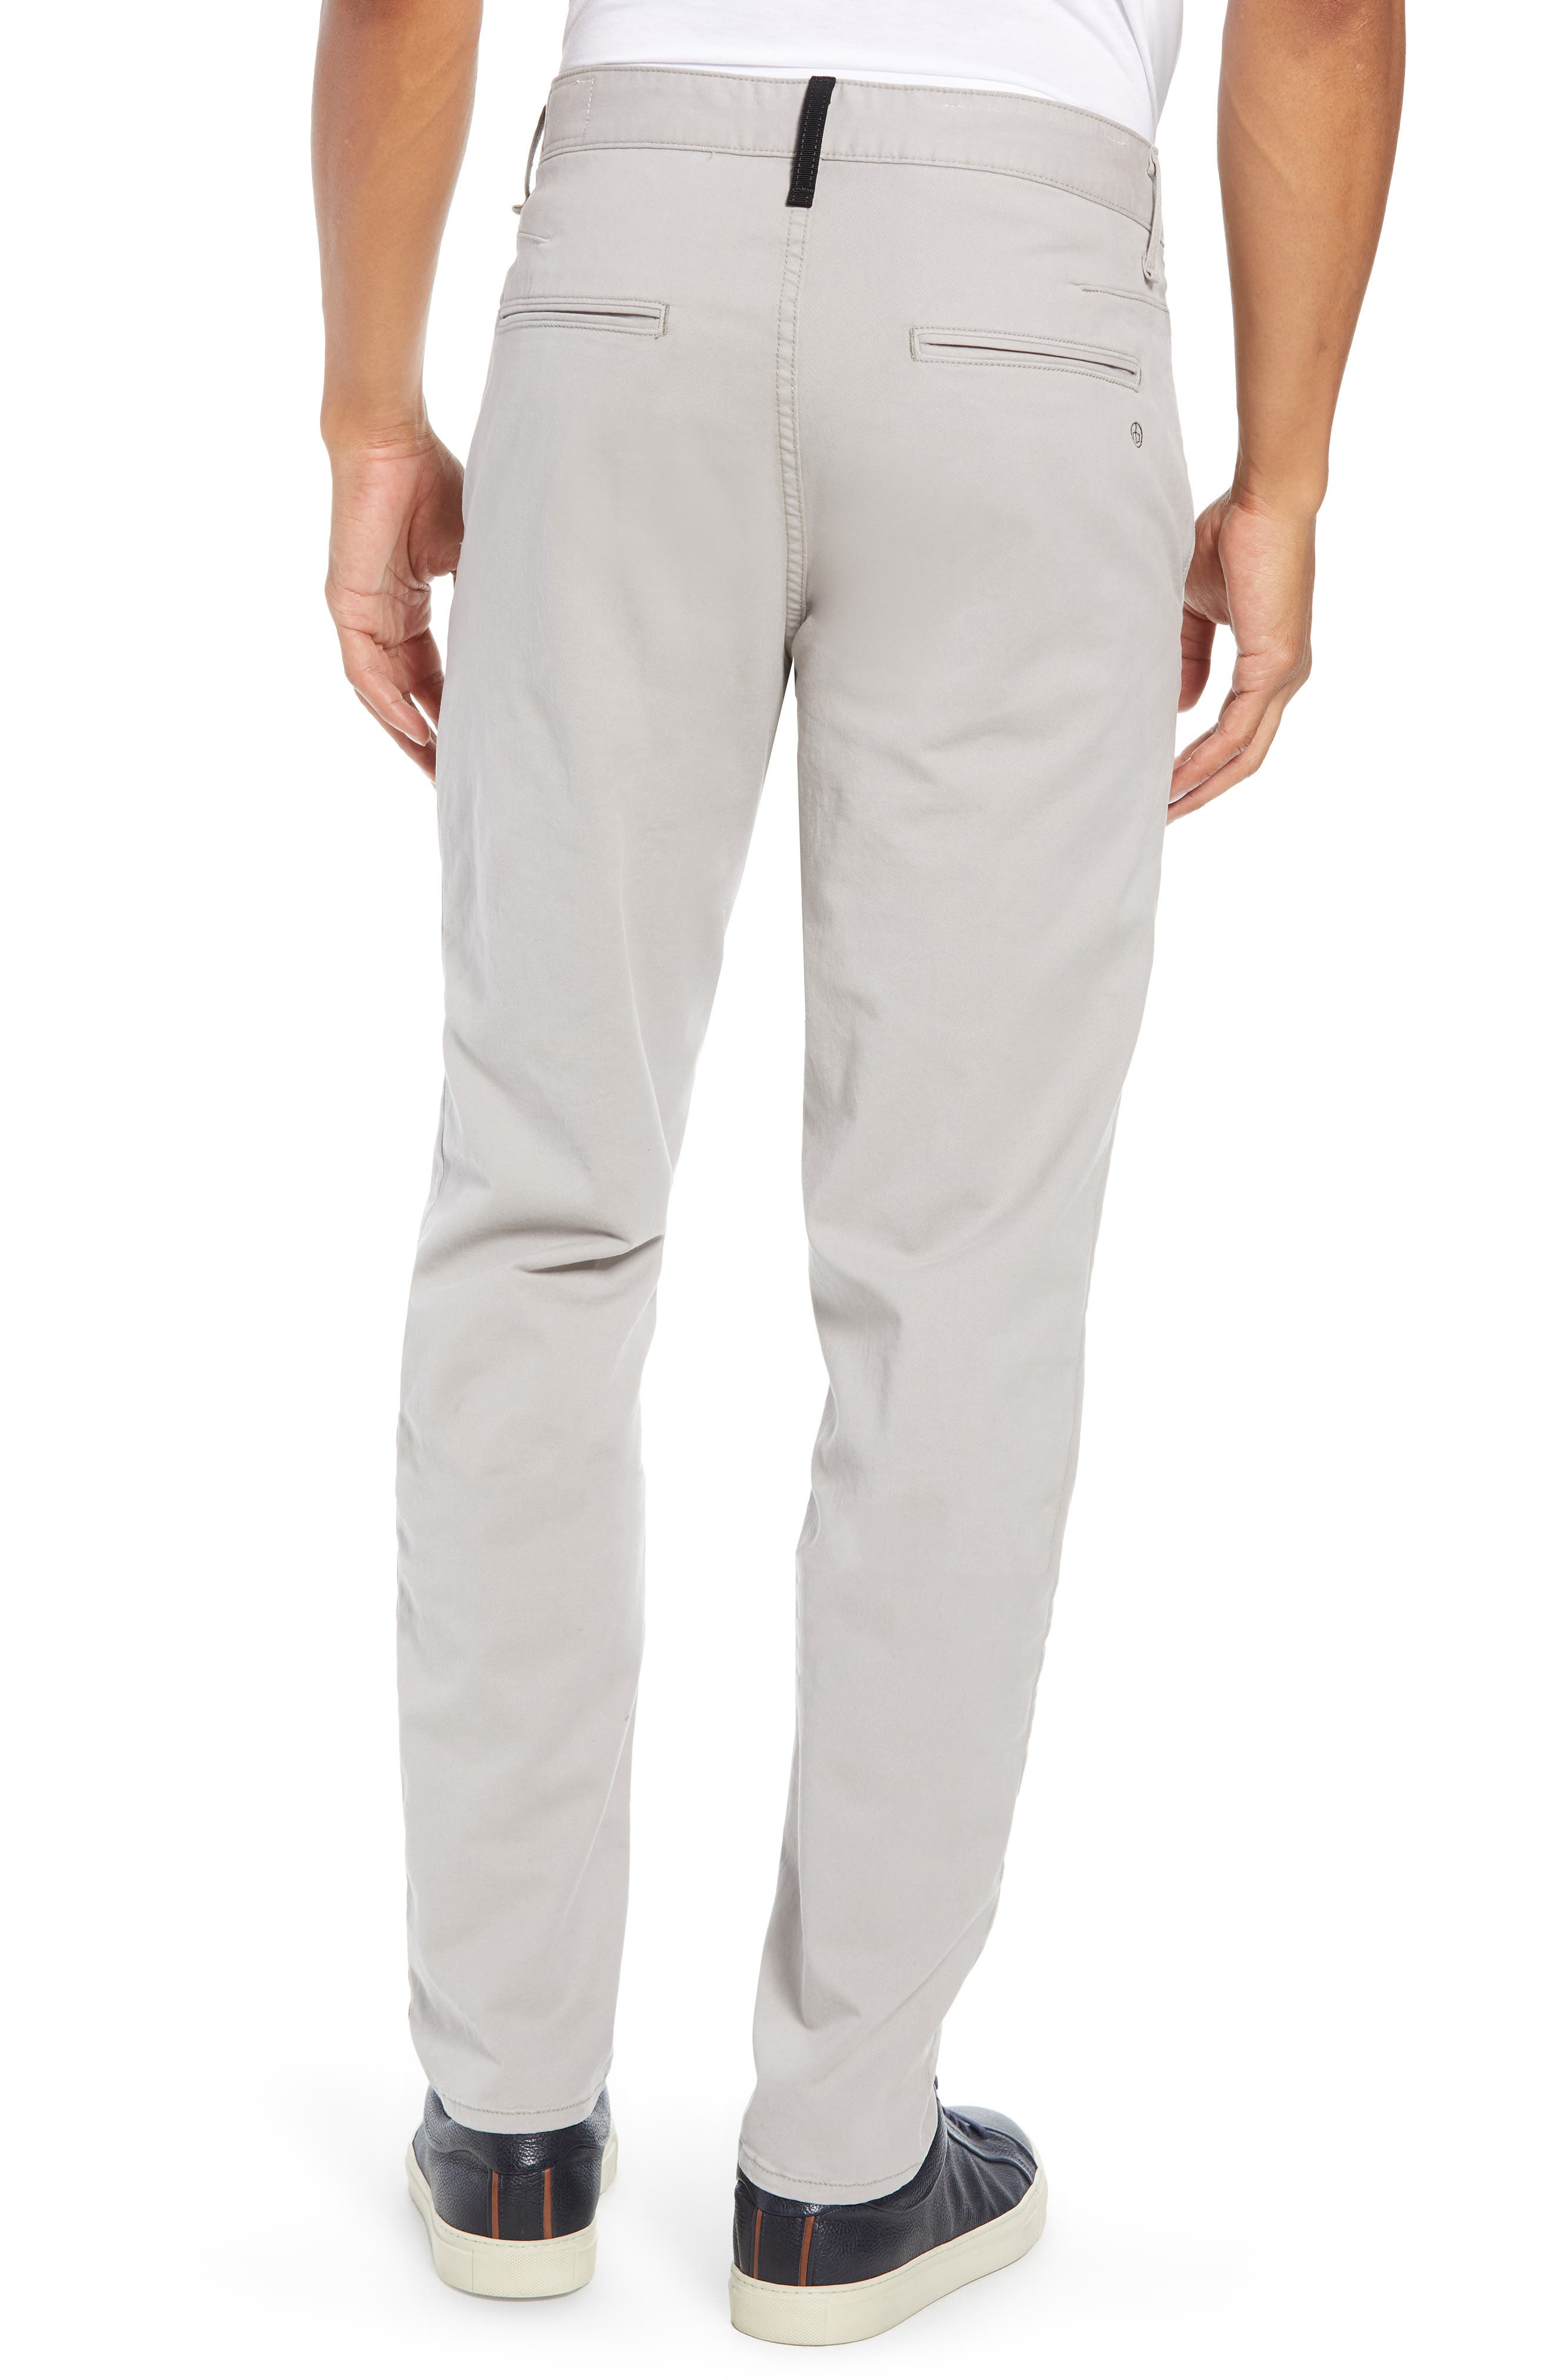 Fit 2 Classic Chinos,                             Alternate thumbnail 2, color,                             LIGHT GREY